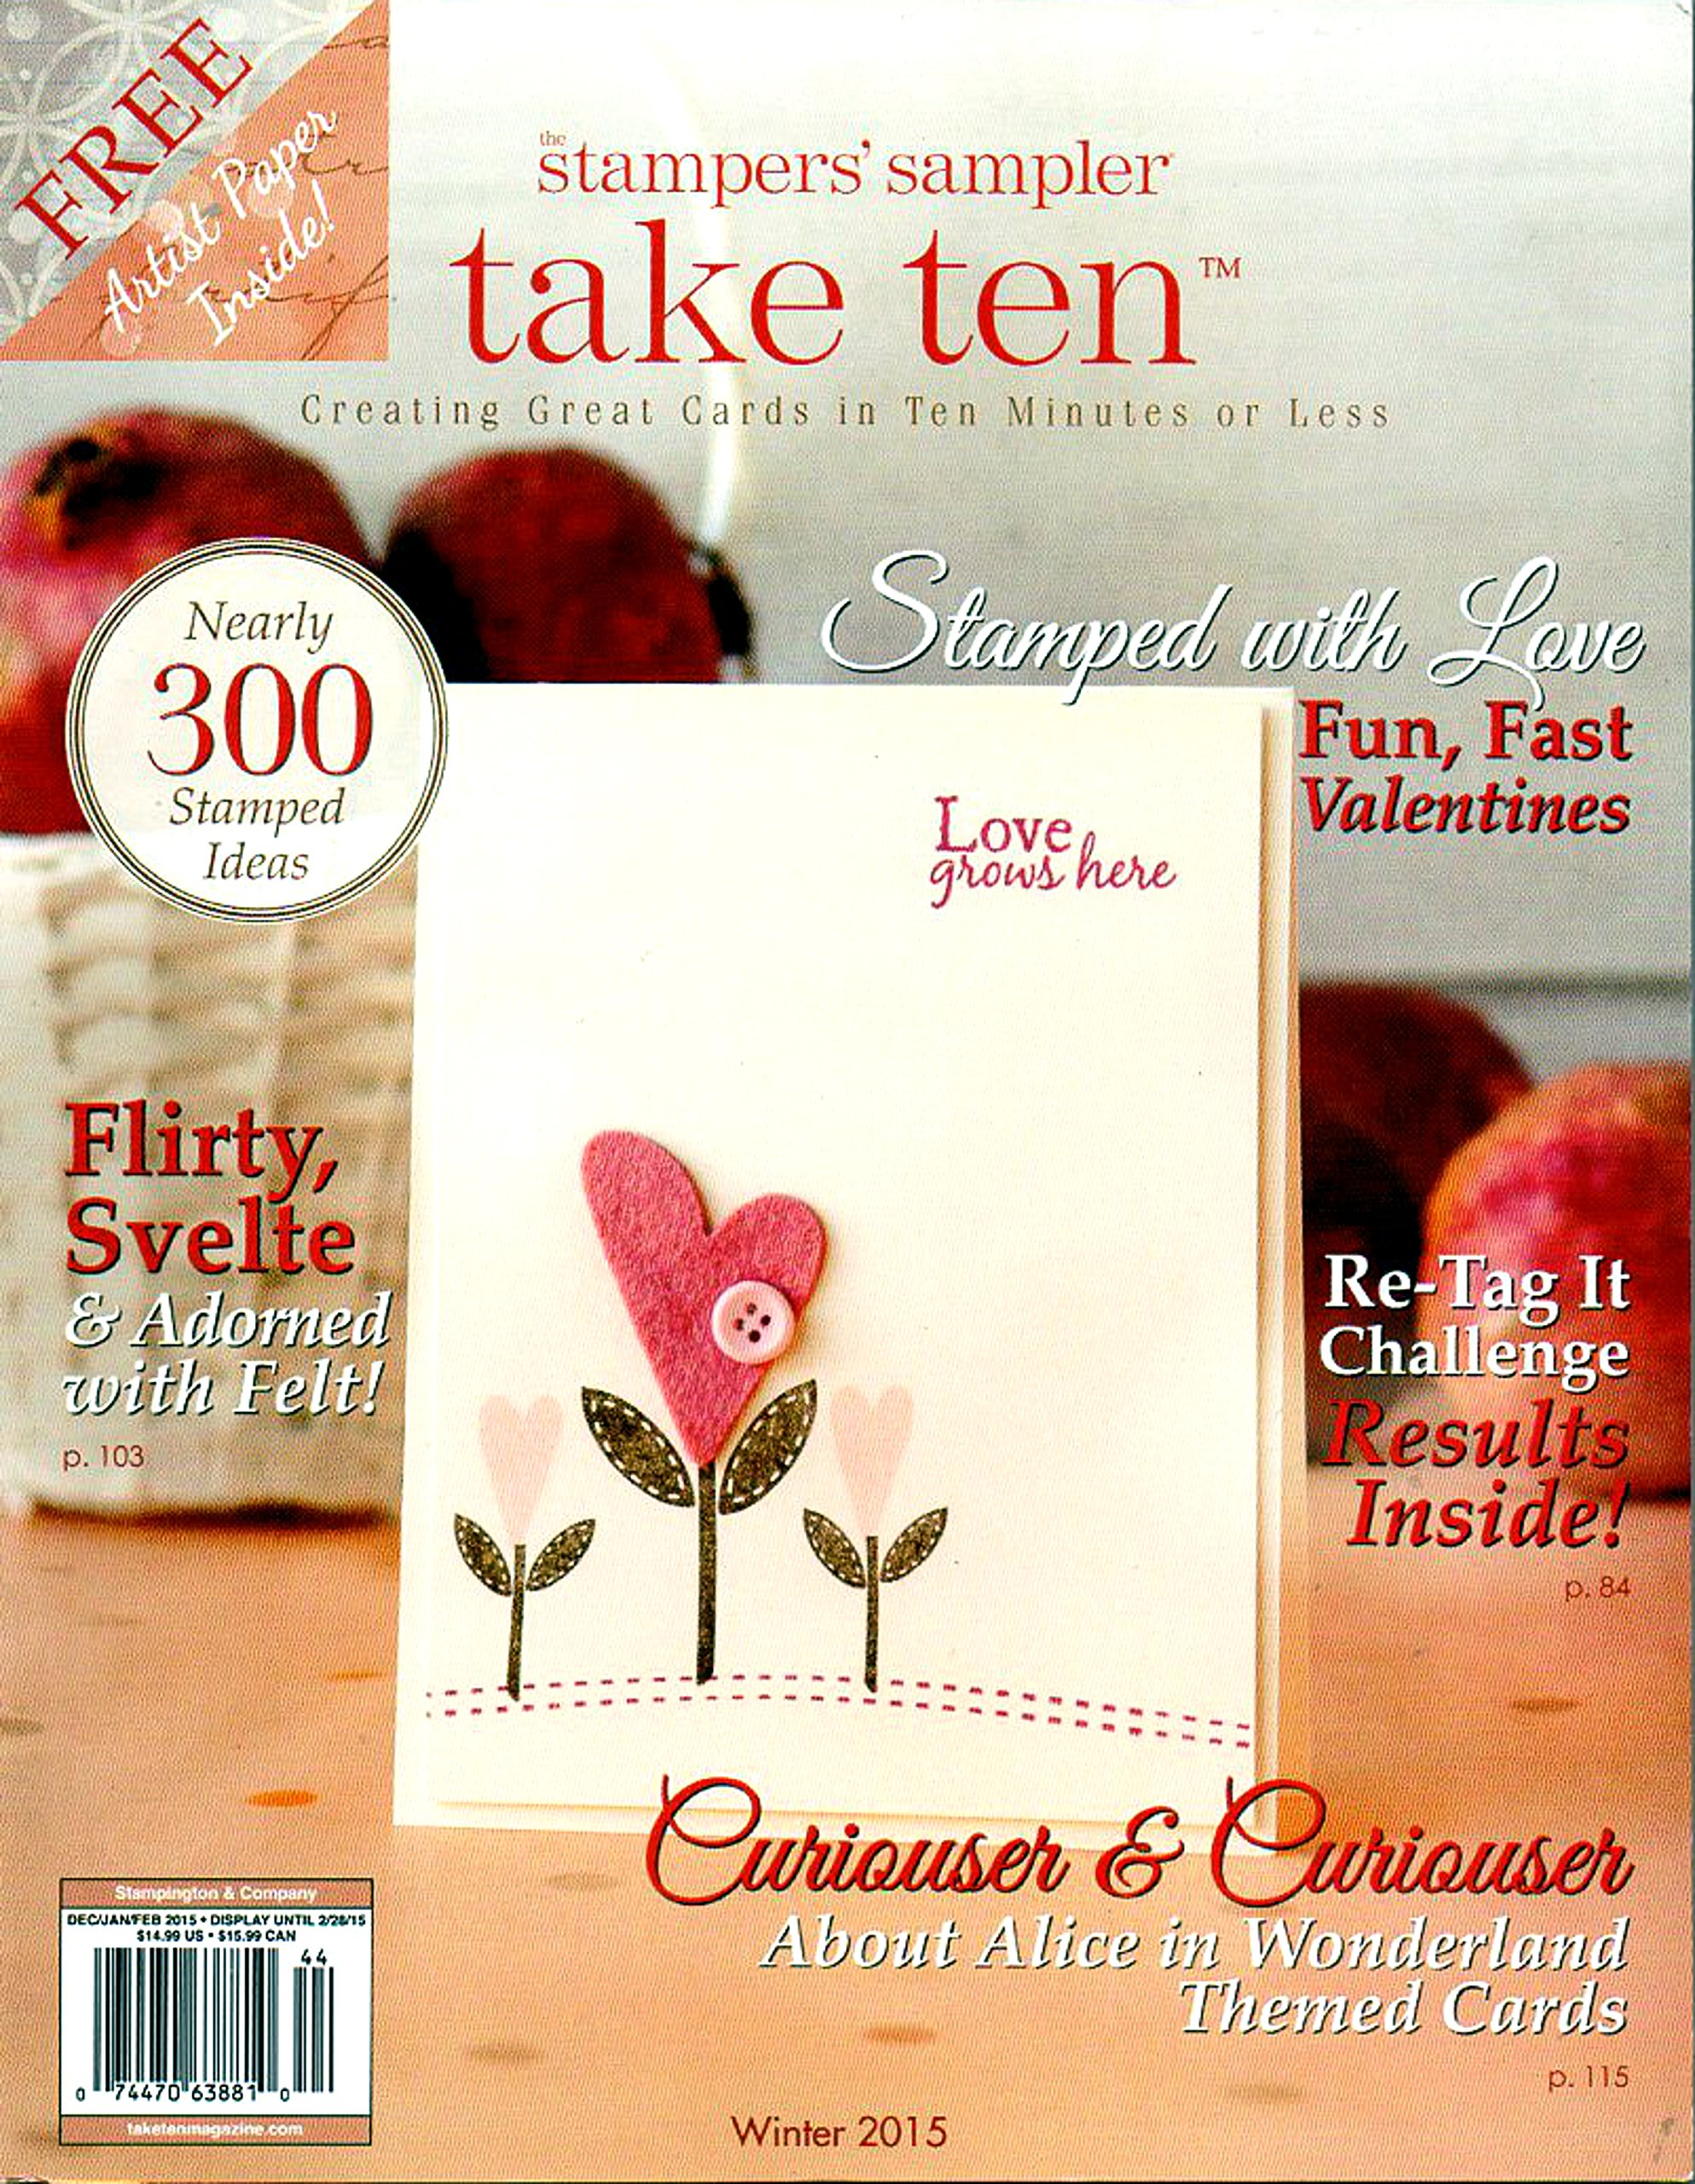 Take Ten: The Stamper's Sampler, Vol 13, Issue 3 Jun/Jul/Aug 2013